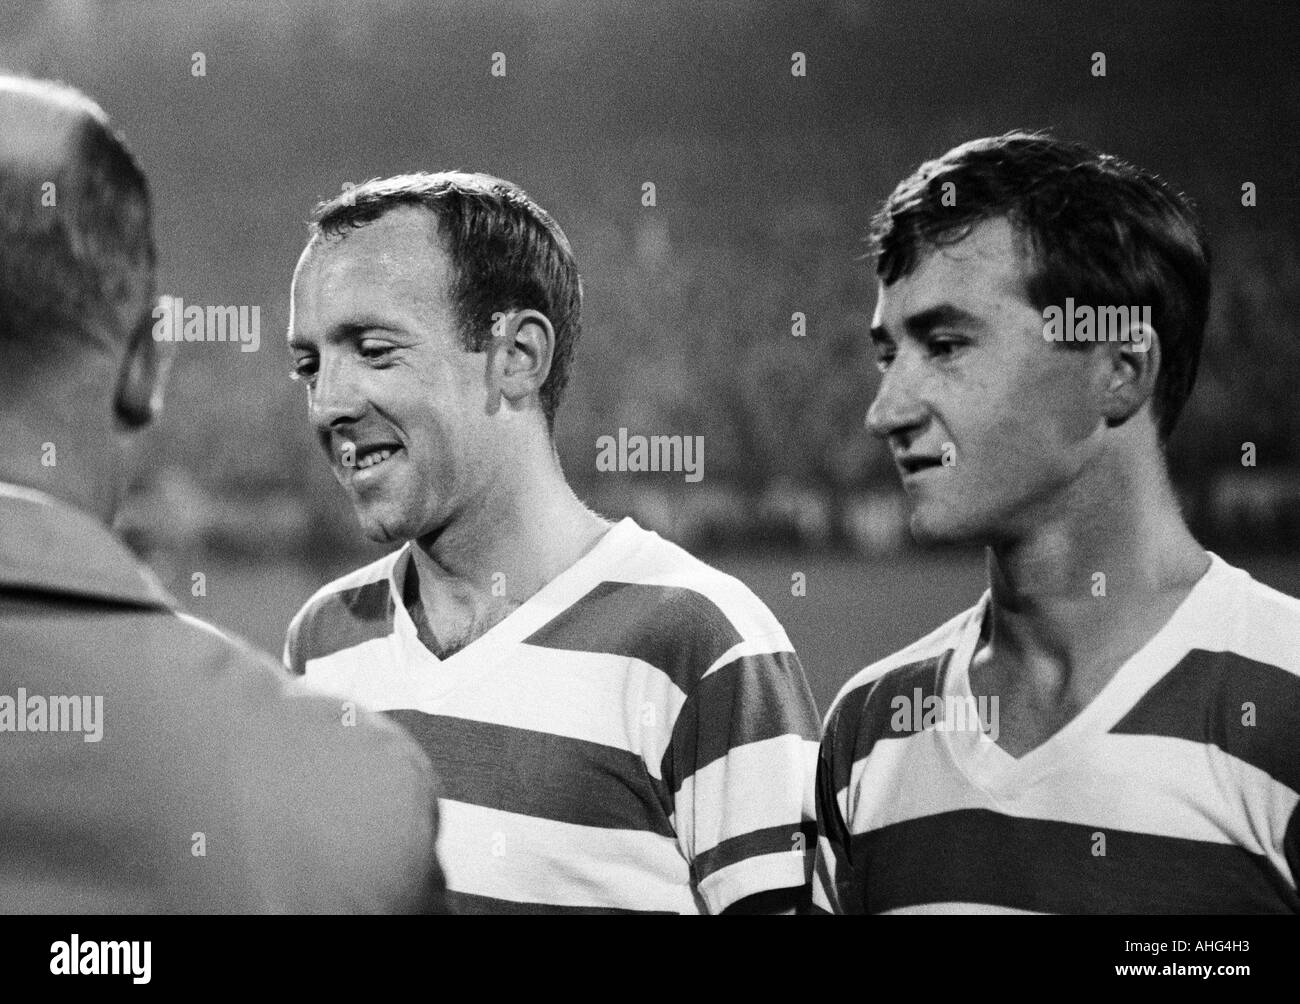 football, Bundesliga, 1967/1968, Wedau Stadium in Duisburg, MSV Duisburg versus Eintracht Frankfurt 0:1, football players, left Horst Gecks, right Michael Bella (both Duisburg) - Stock Image